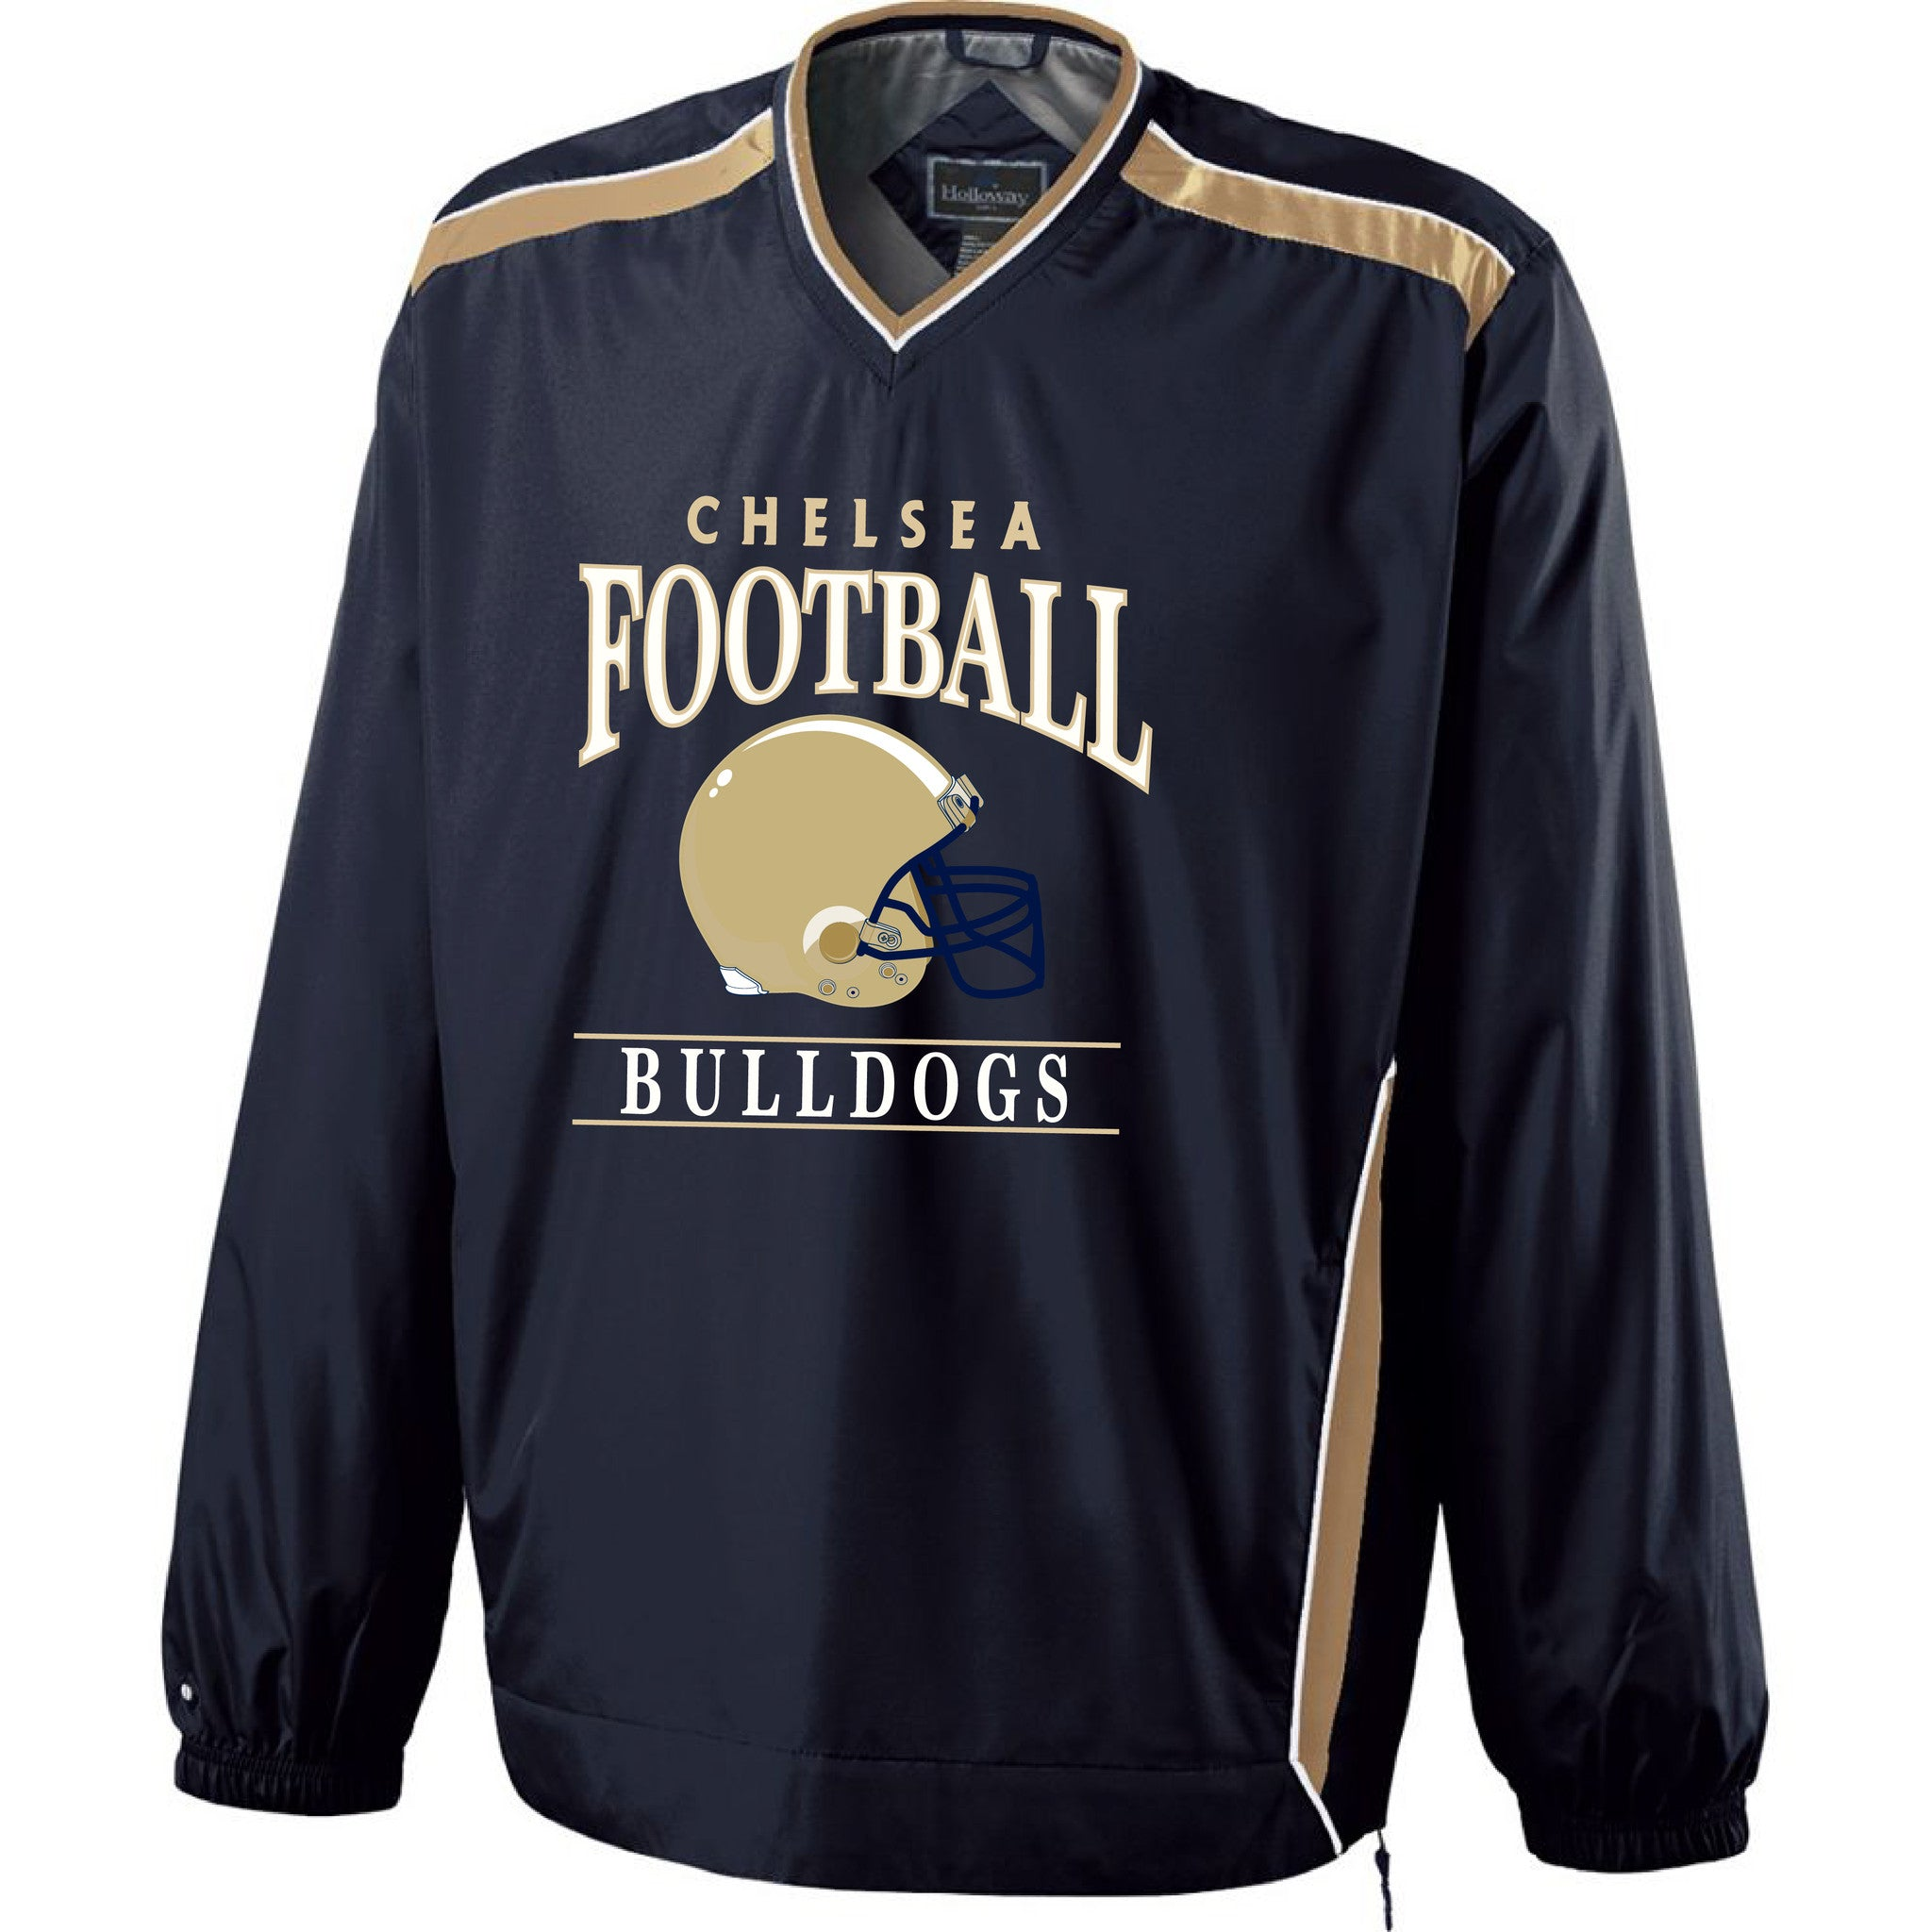 Youth Chelsea Football Acclaim Pullover - Pick your Design